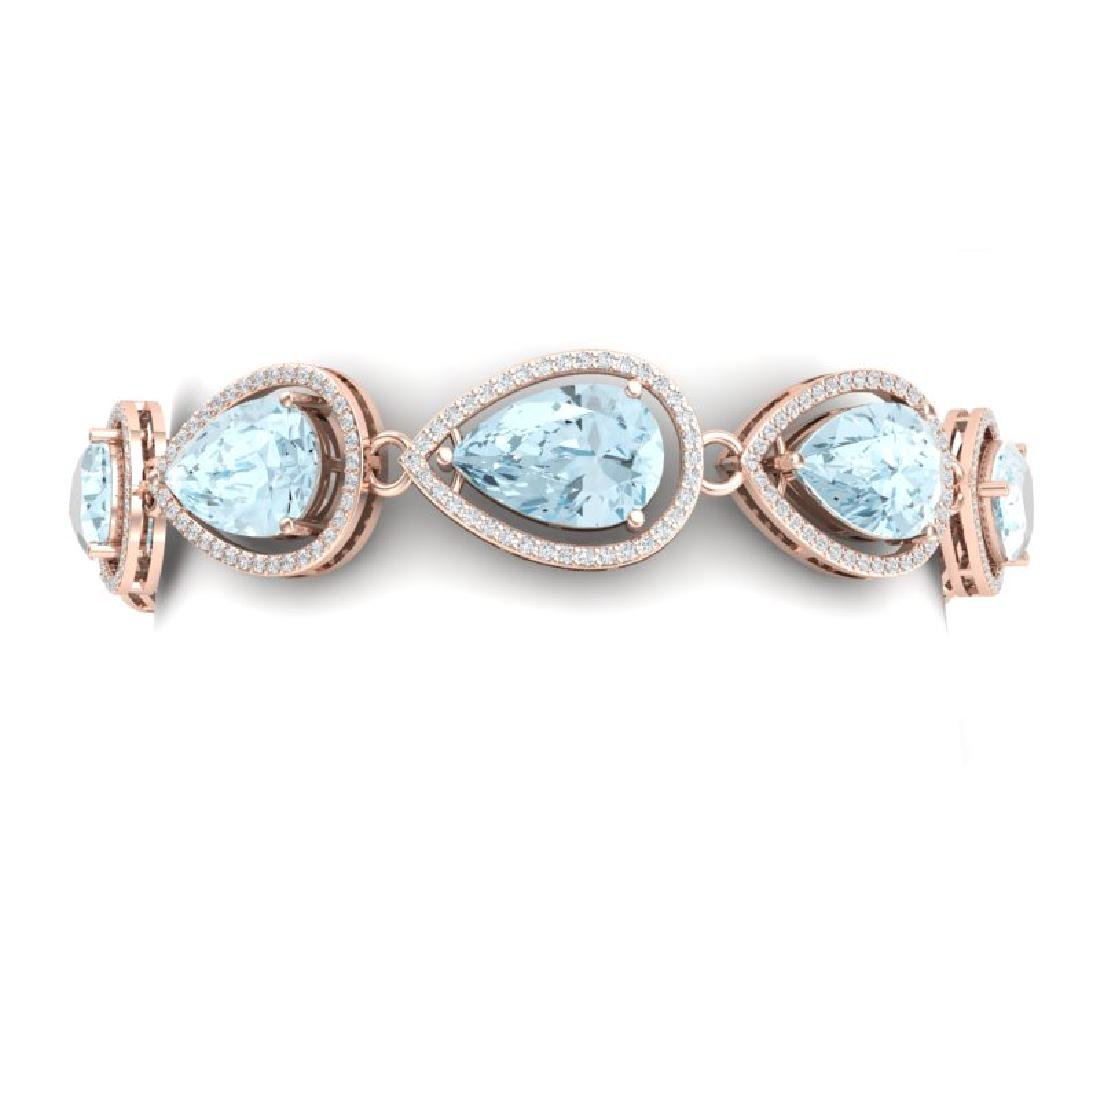 25.53 CTW Royalty Sky Topaz & VS Diamond Bracelet 18K